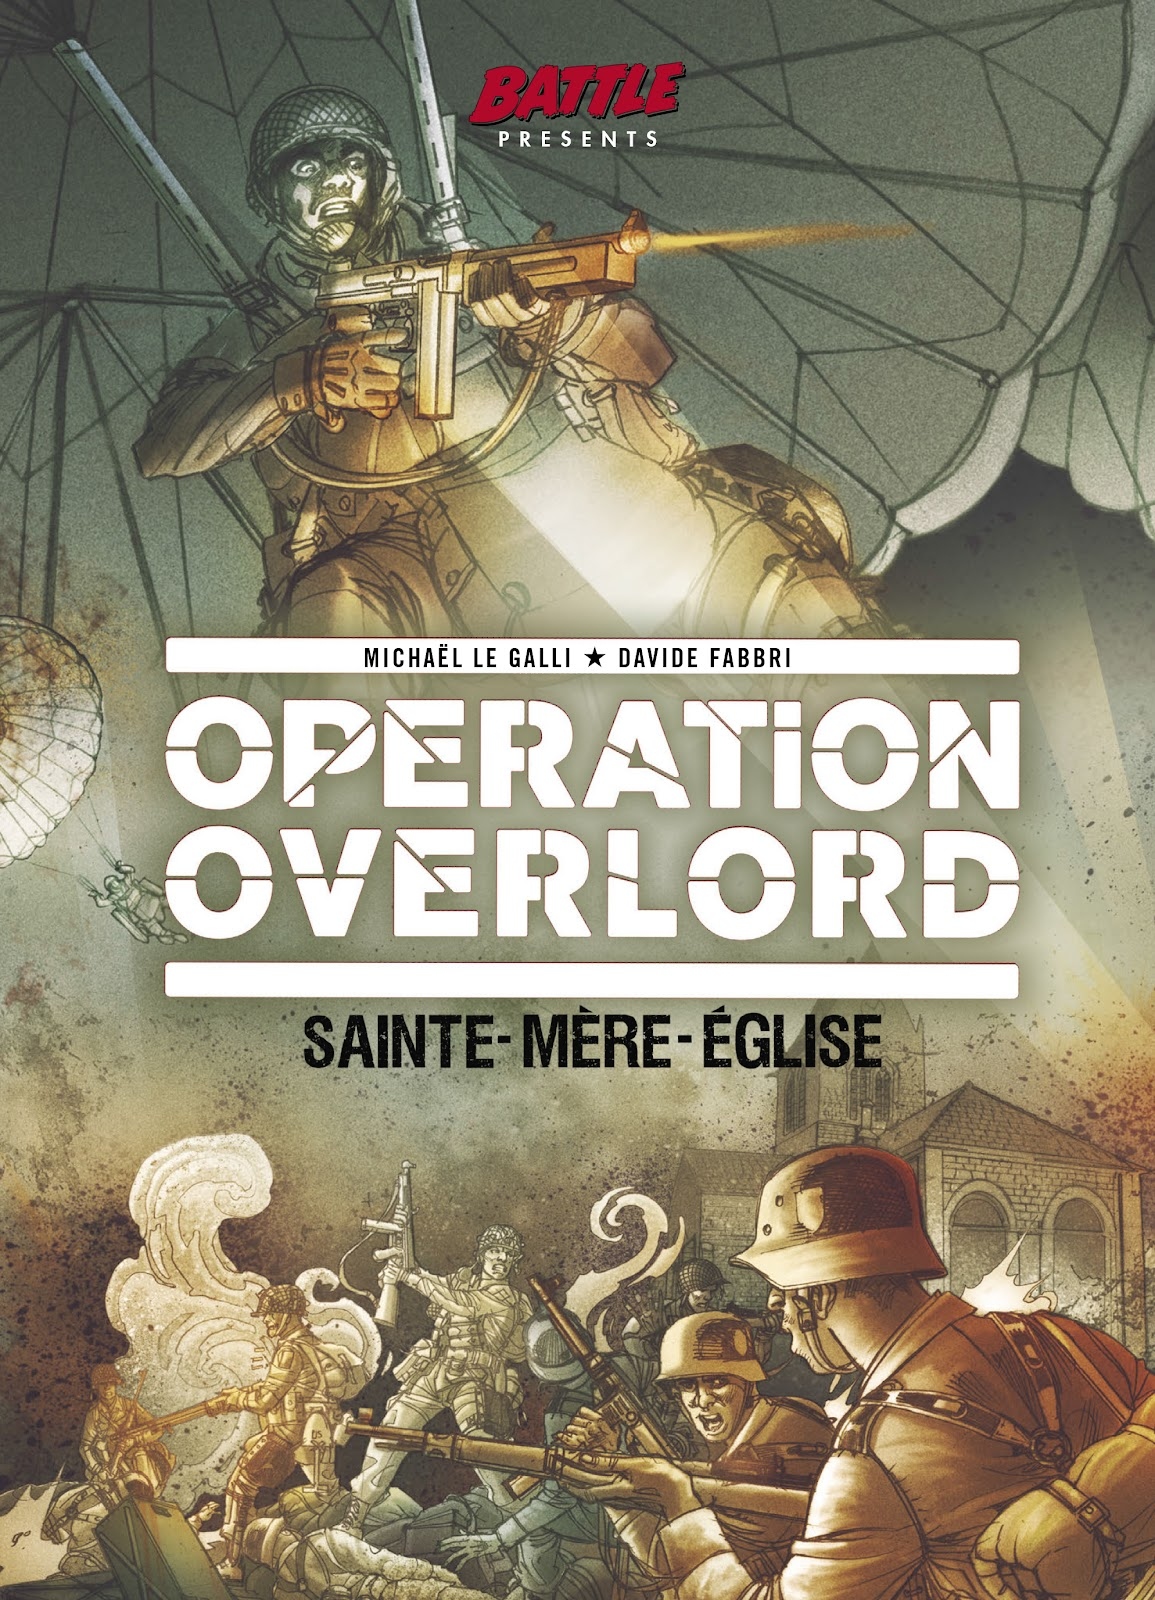 Read online Opération Overlord comic -  Issue #1 - 1